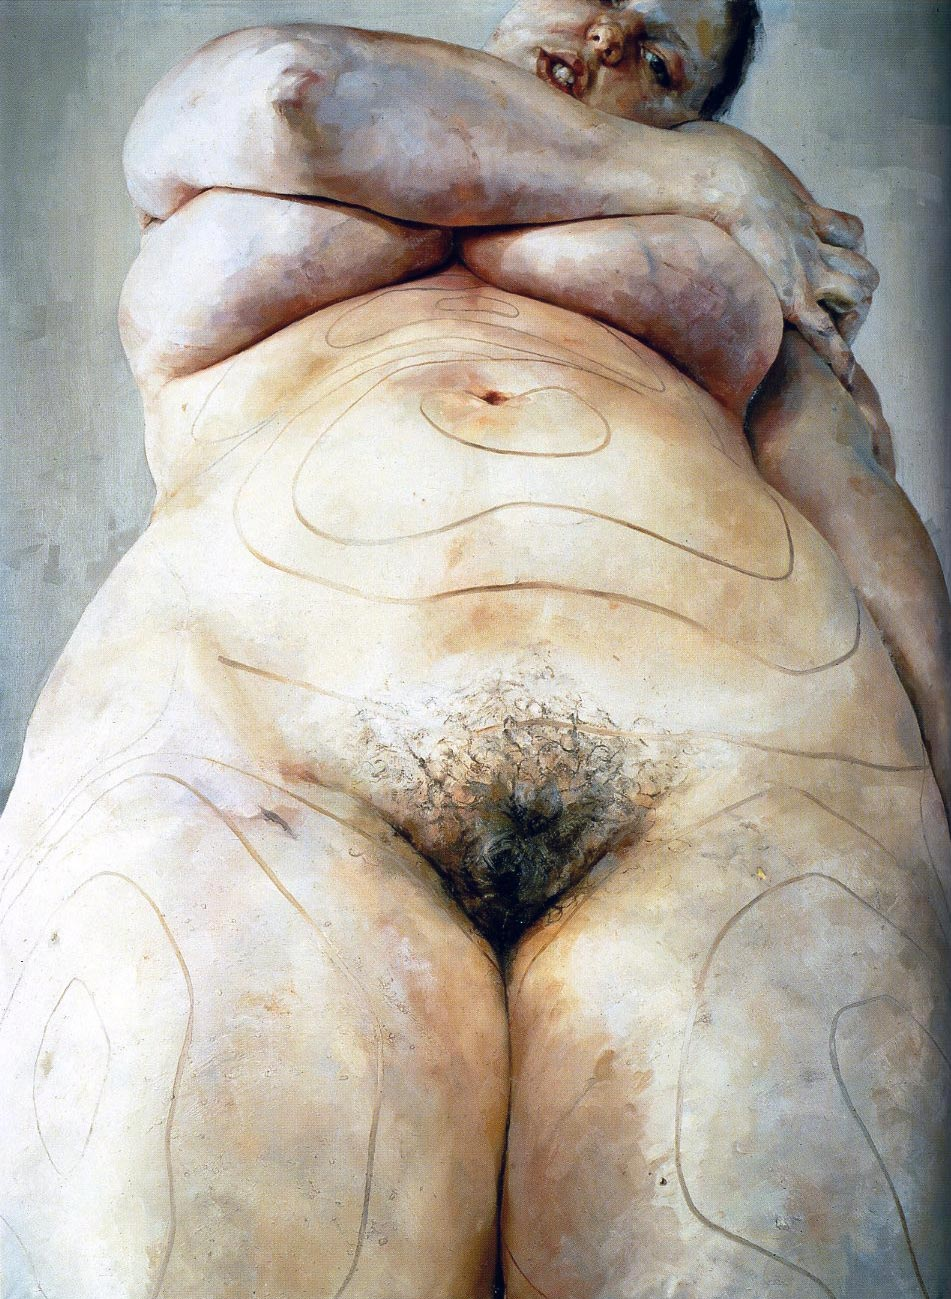 Jenny Saville – Plan, 1993, Oil on canvas, 274.3 x 213.4 cm